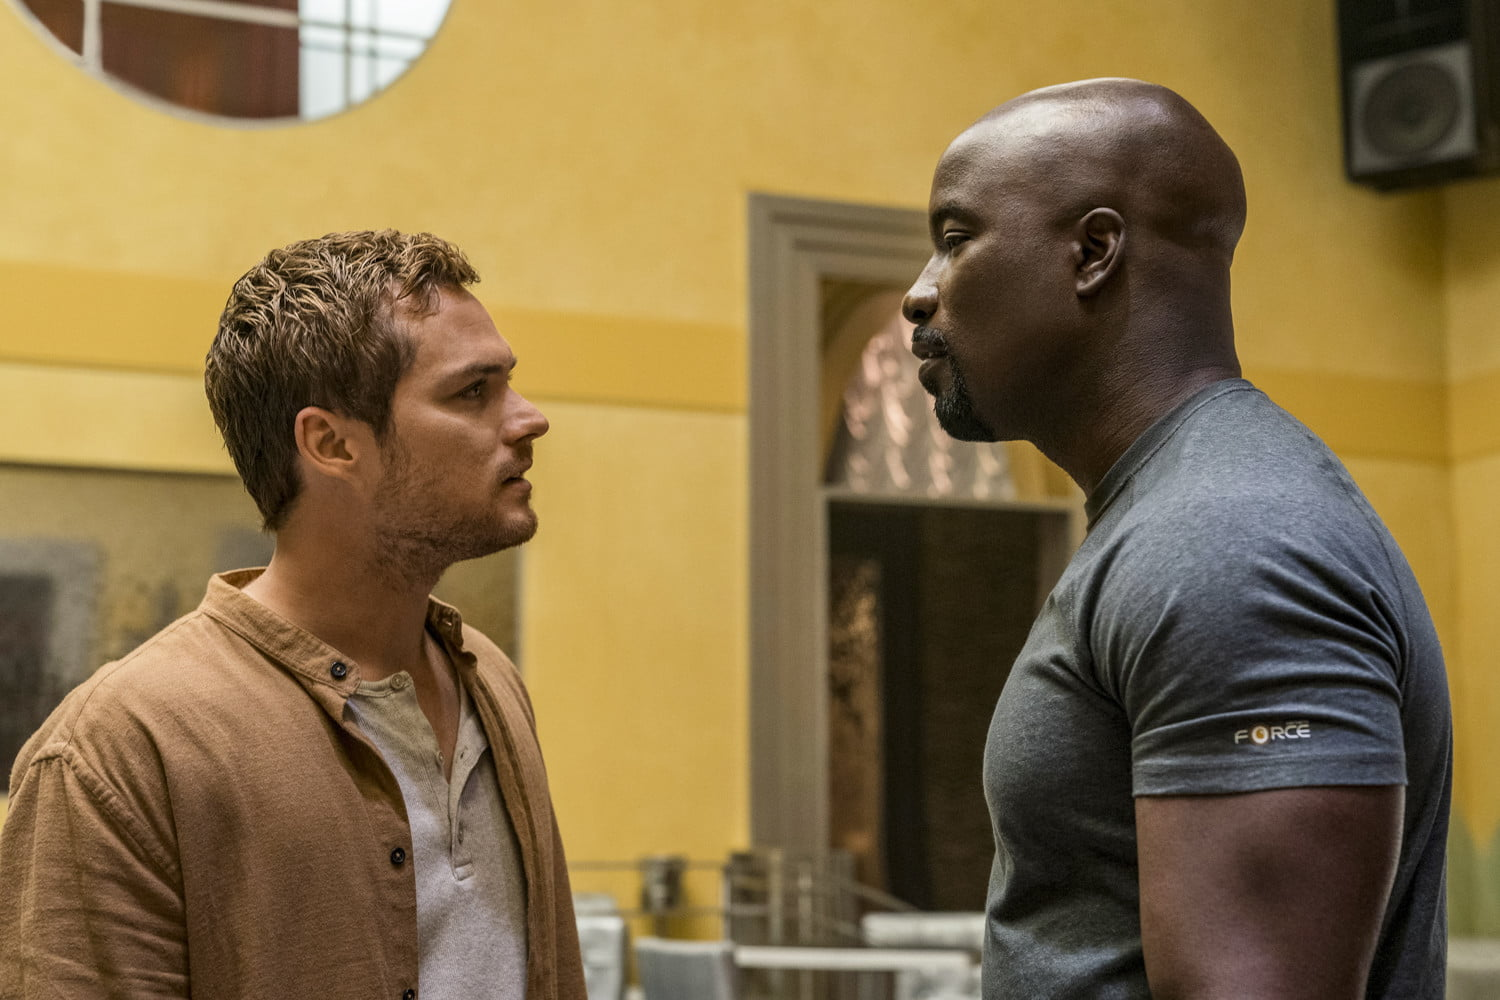 Netflix Cancels Iron Fist and Luke Cage, Sparks Serious